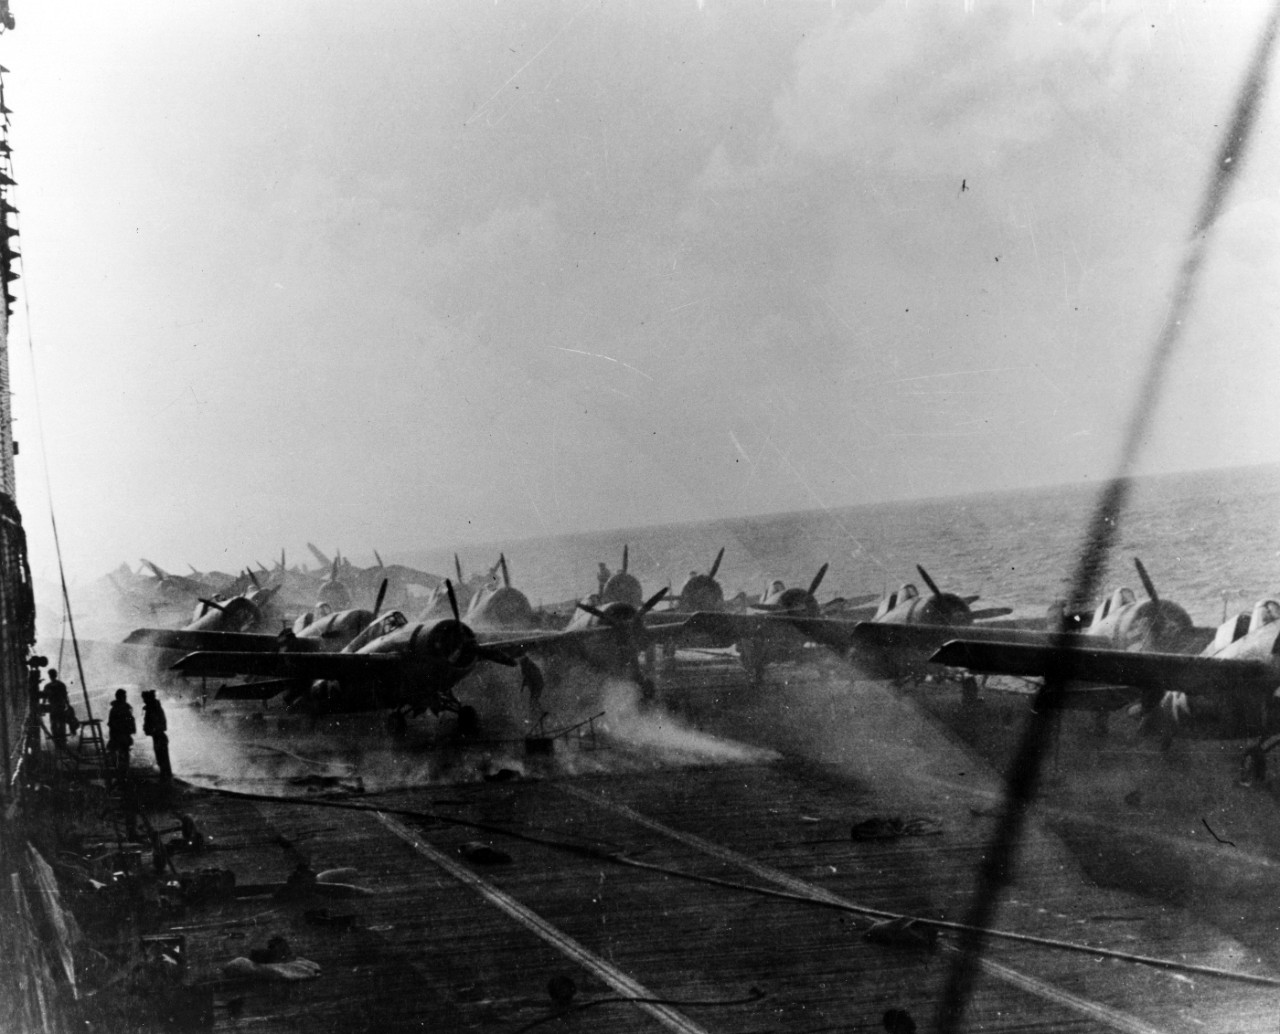 Photo #: 80-G-16802  Battle of the Coral Sea, May 1942